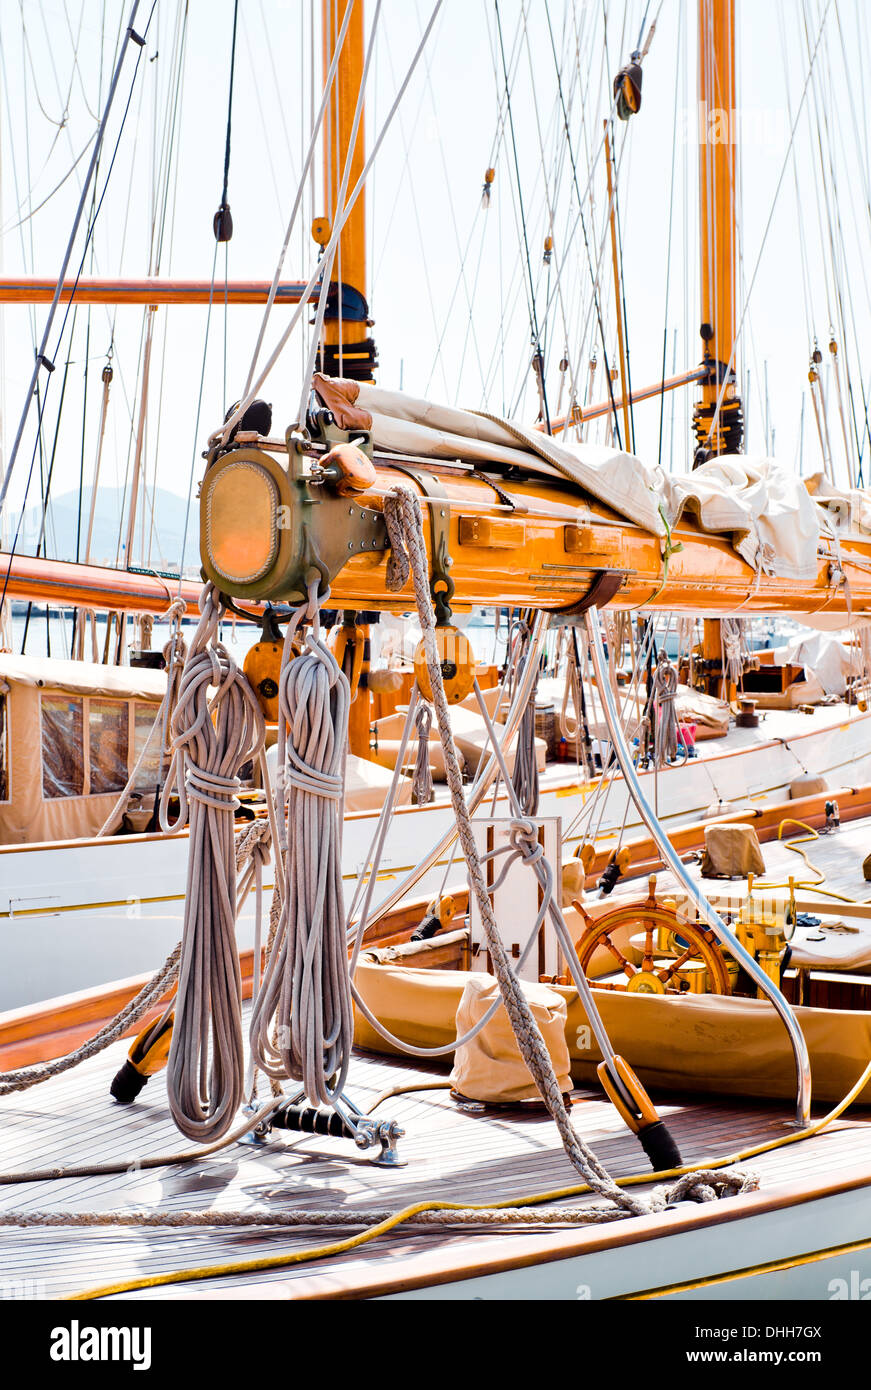 Yacht rigging - Stock Image